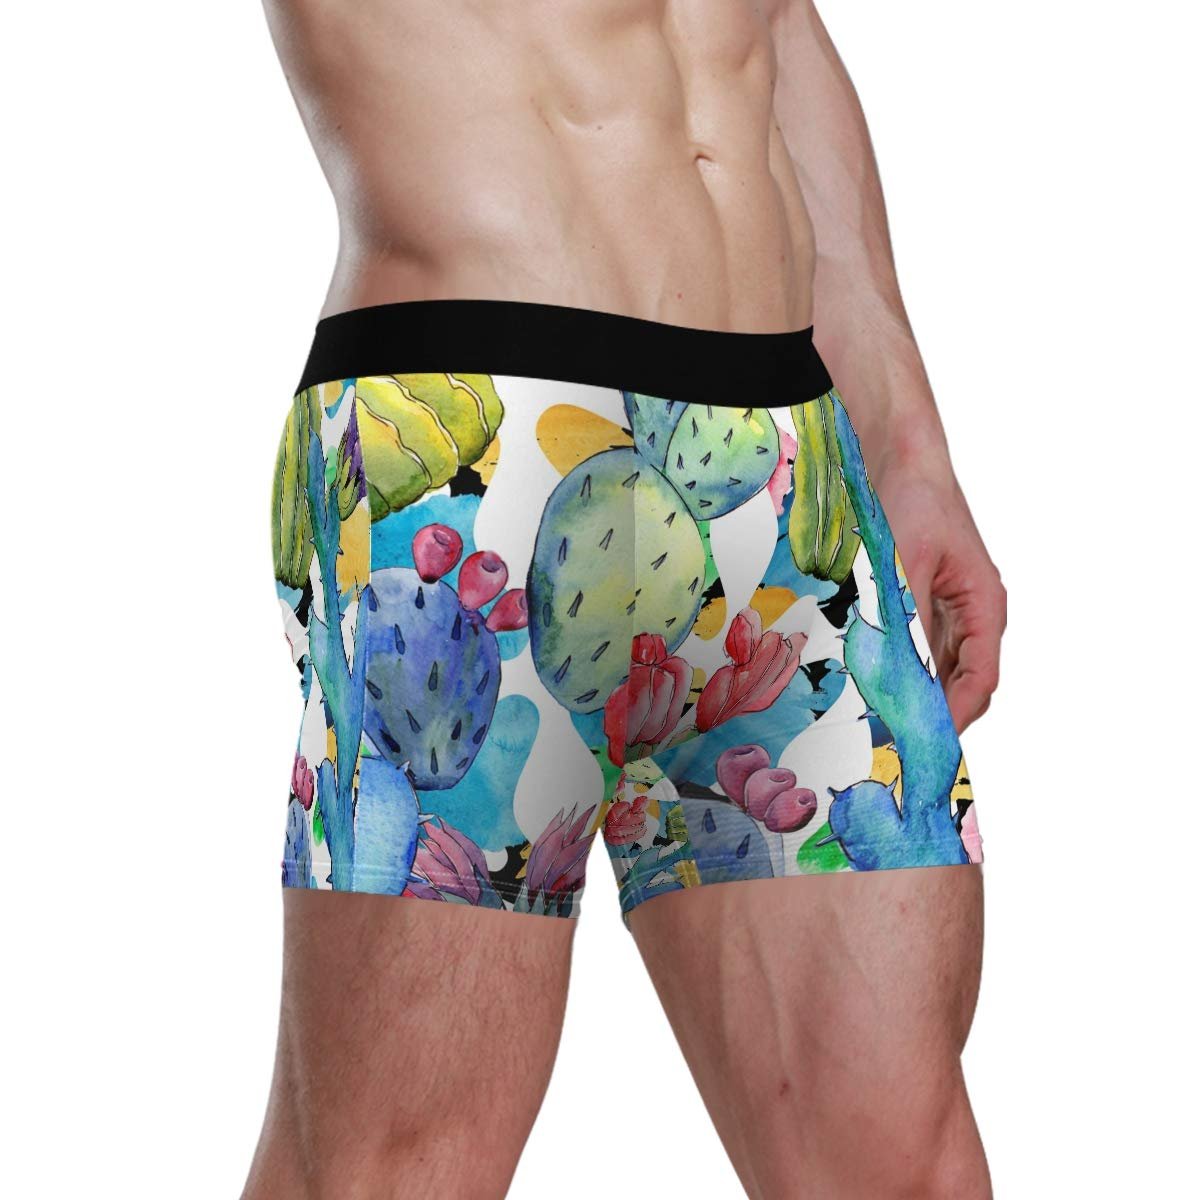 Tropical Plants Watercolor Vipsk Seamless Stretch Mens Polyester Boxer Briefs Underwear 1-Pack Set